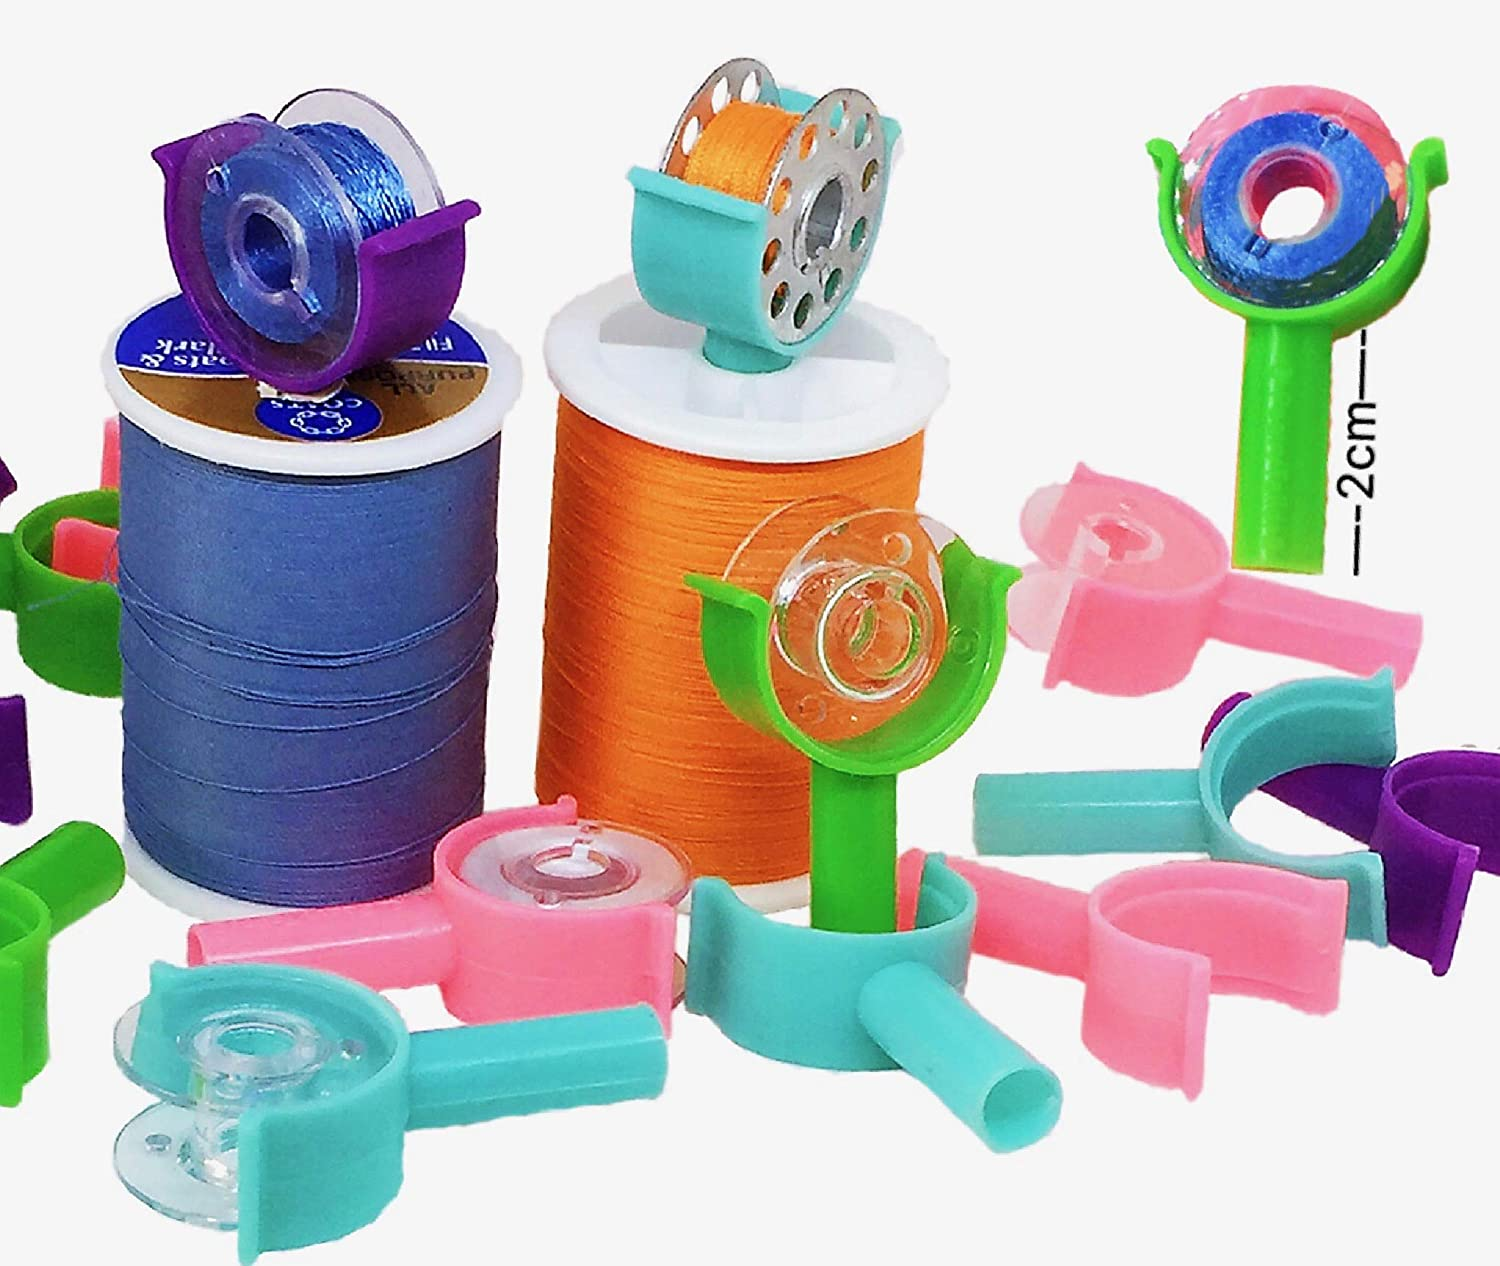 PeavyTailor Bobbin Buddies 12pcs Bobbin Holder Clamp Thread Organizer Matching Thread Spools Together #2 peavytailor.com